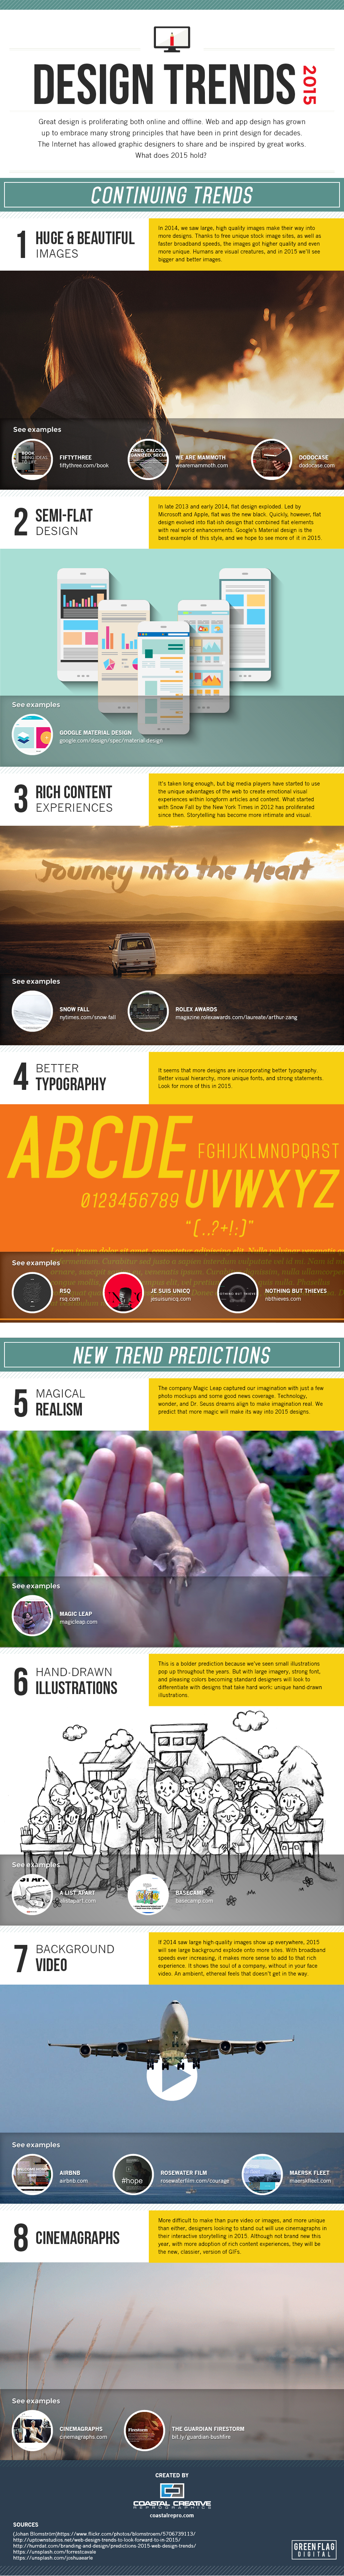 infographic of 2015 design trends